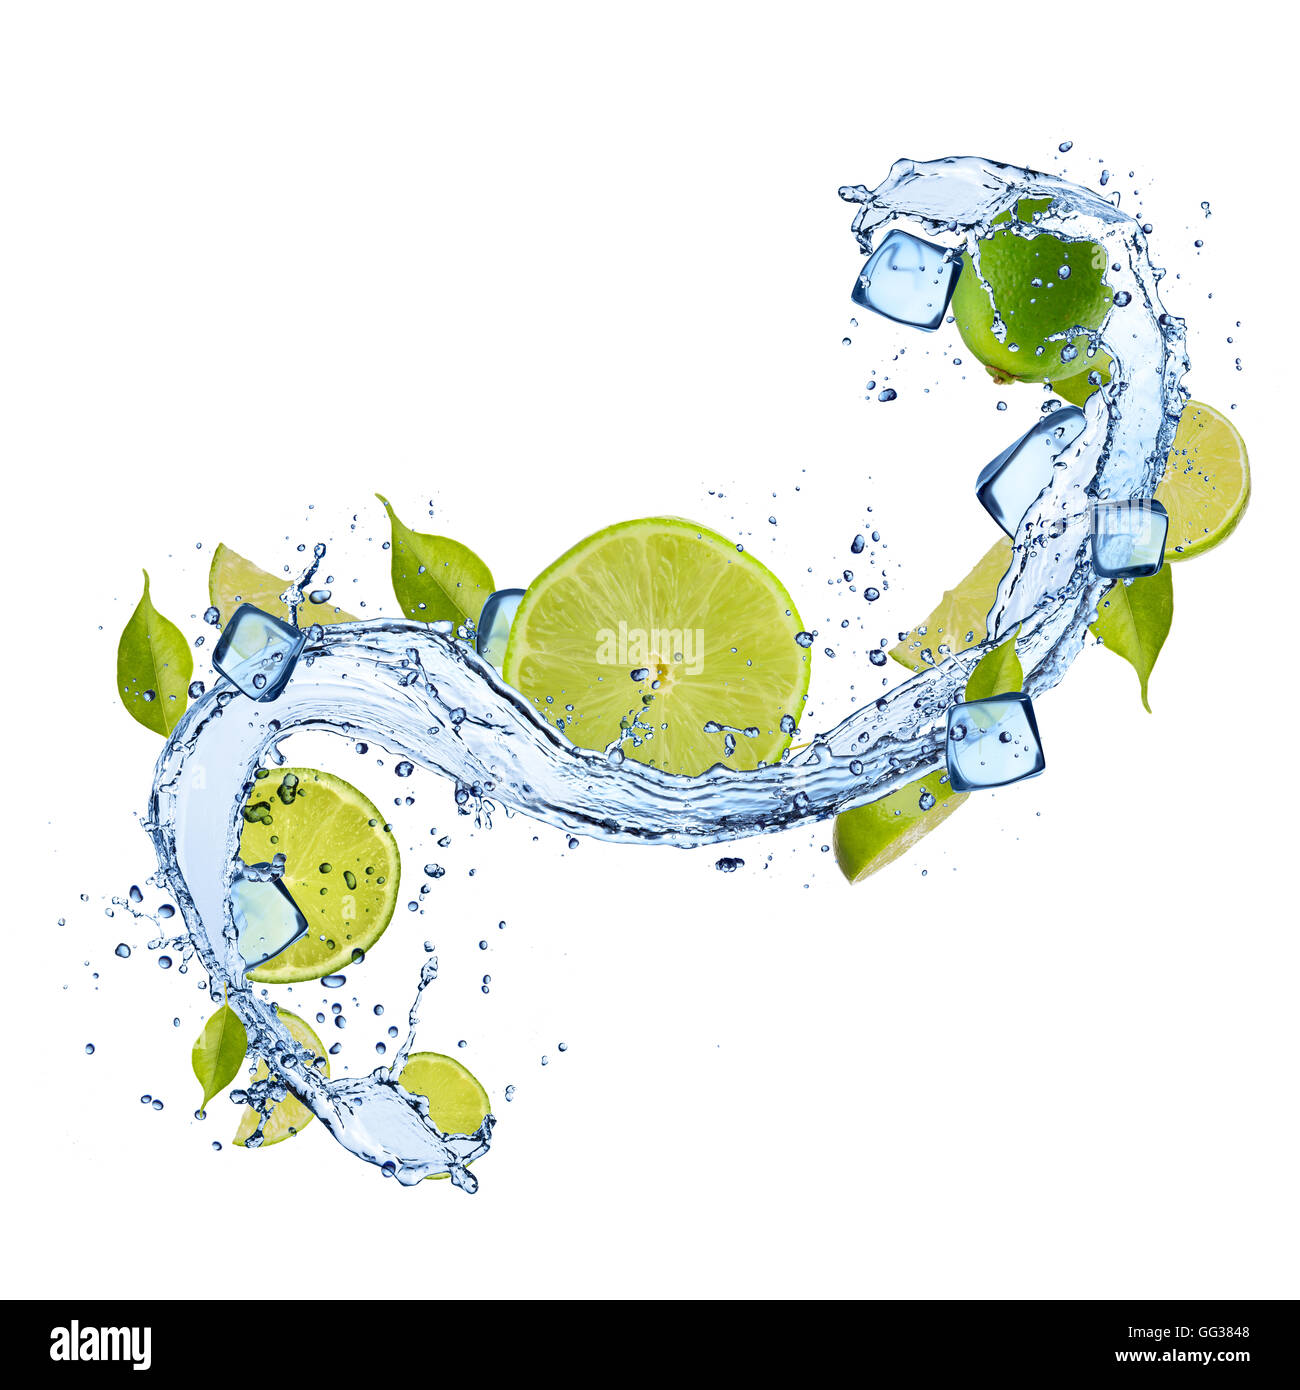 Pieces of limes in water splash and ice cubes, isolated on white background Stock Photo